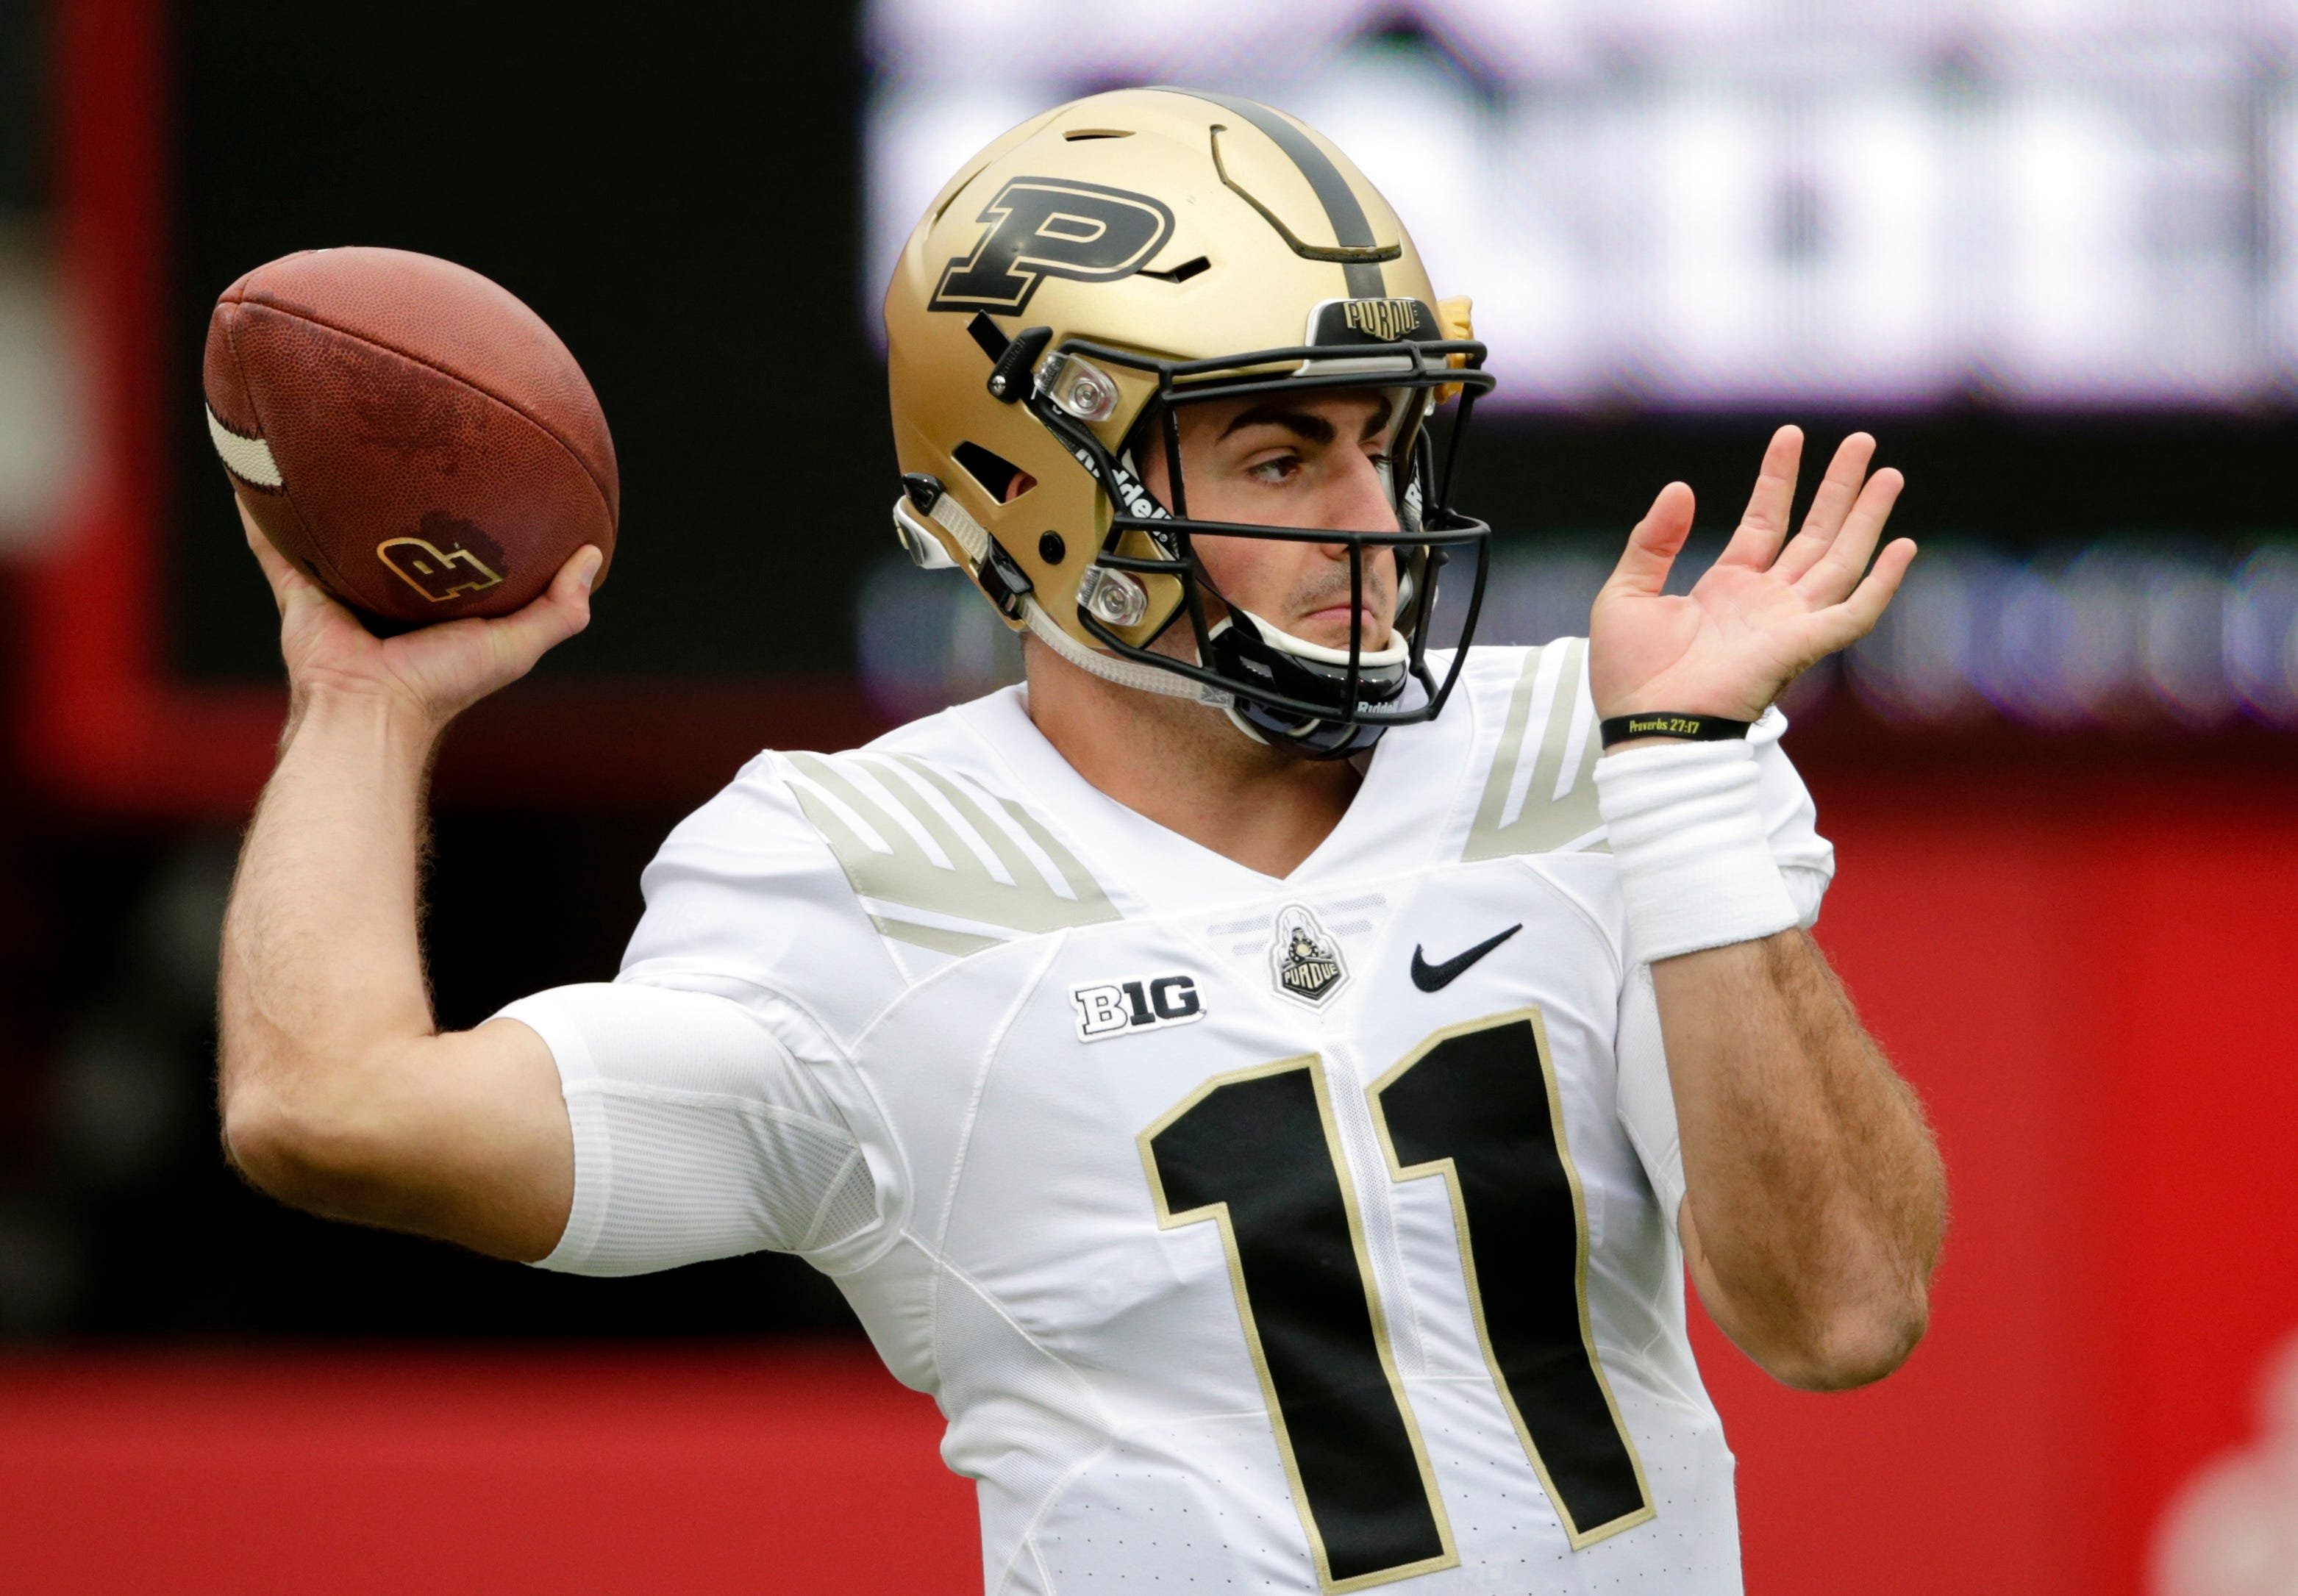 Purdue quarterback David Blough (11) warms up before an NCAA college football game against Nebraska in Lincoln, Neb., Saturday, Sept. 29, 2018. (AP Photo/Nati Harnik)